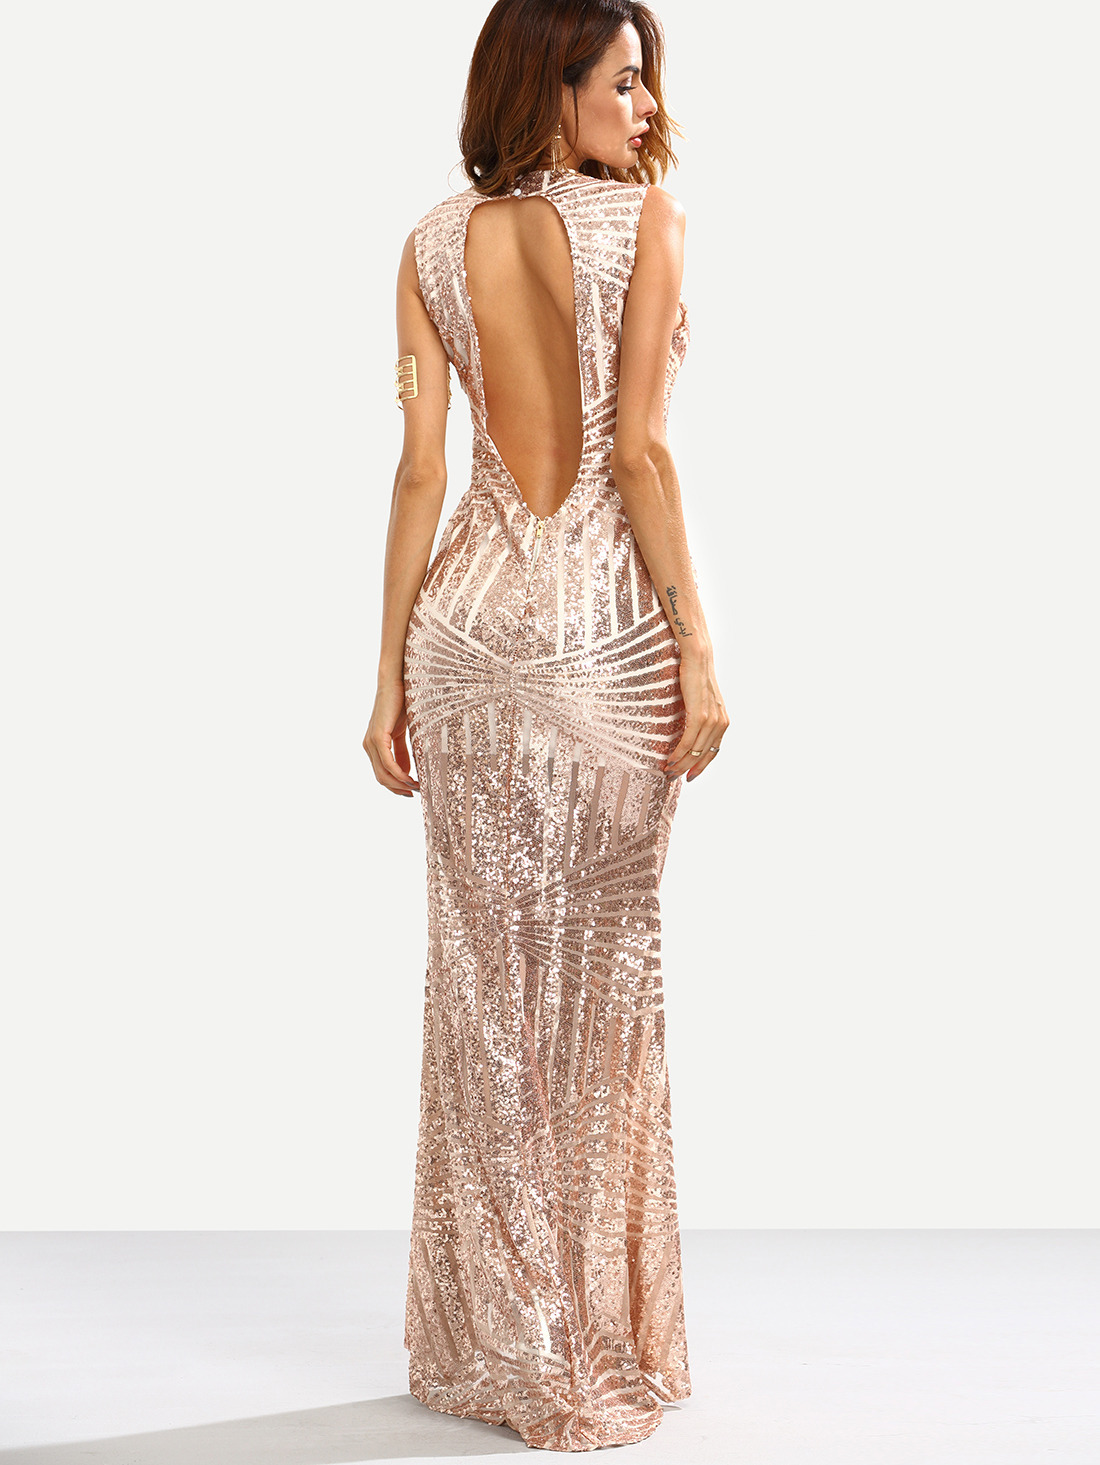 120.00$  Watch now - http://vimjy.justgood.pw/vig/item.php?t=w0djcz15950 - Women's Dress Sequin Gown Maxi Party Prom Bridesmaid Evening Blush Cocktail $350 120.00$